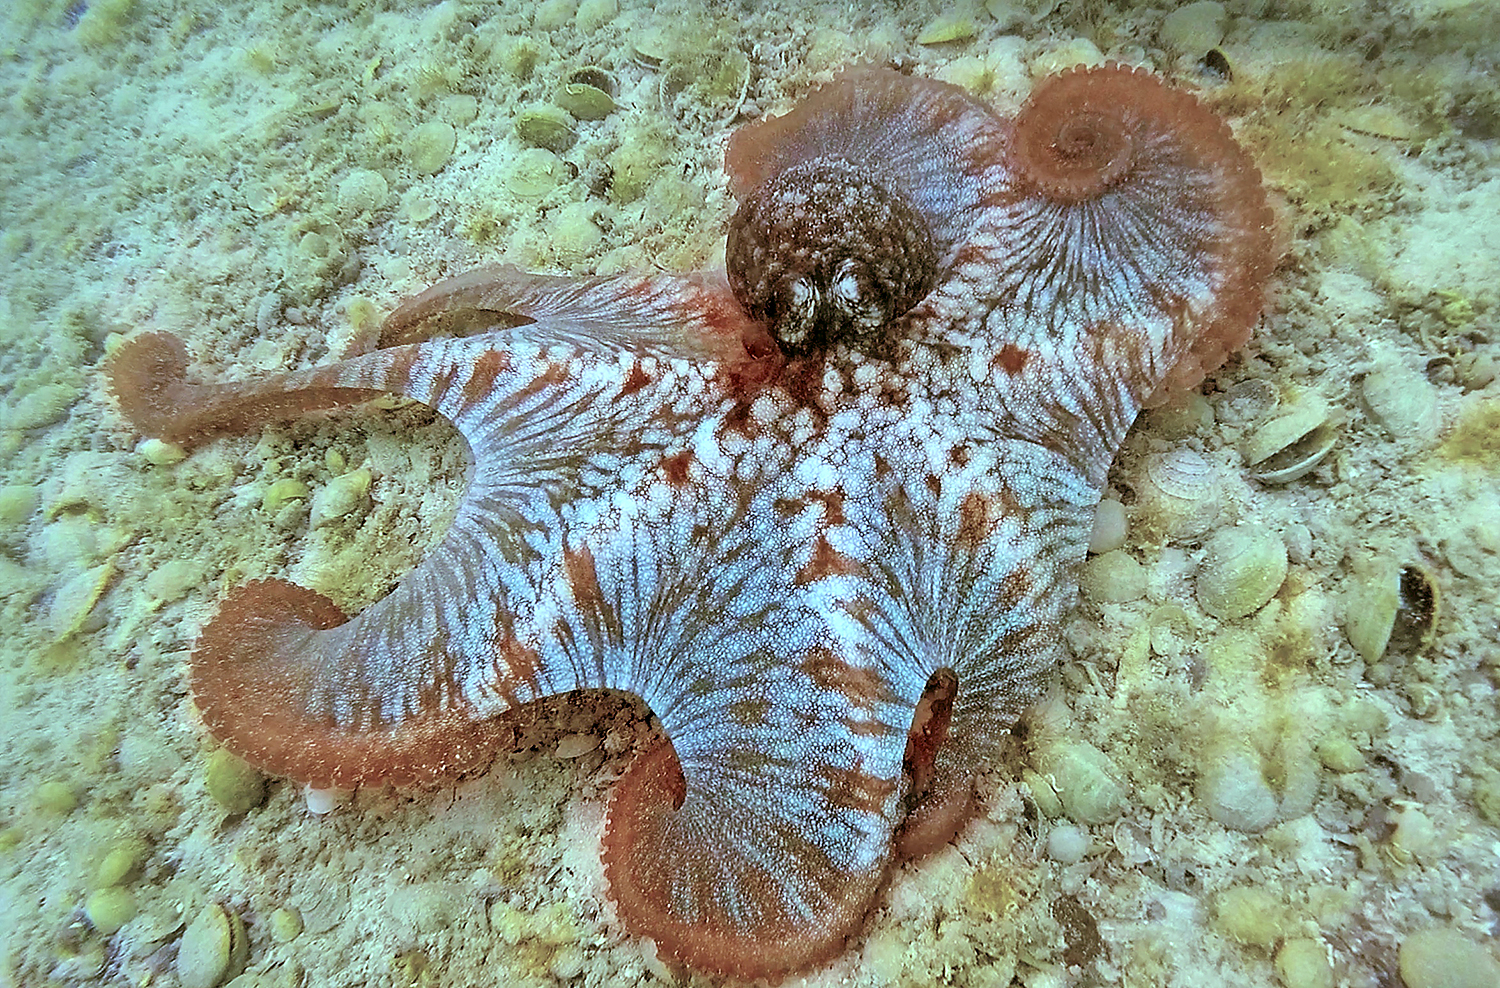 Octopus are very common within the Sweetings Pond ecosystem